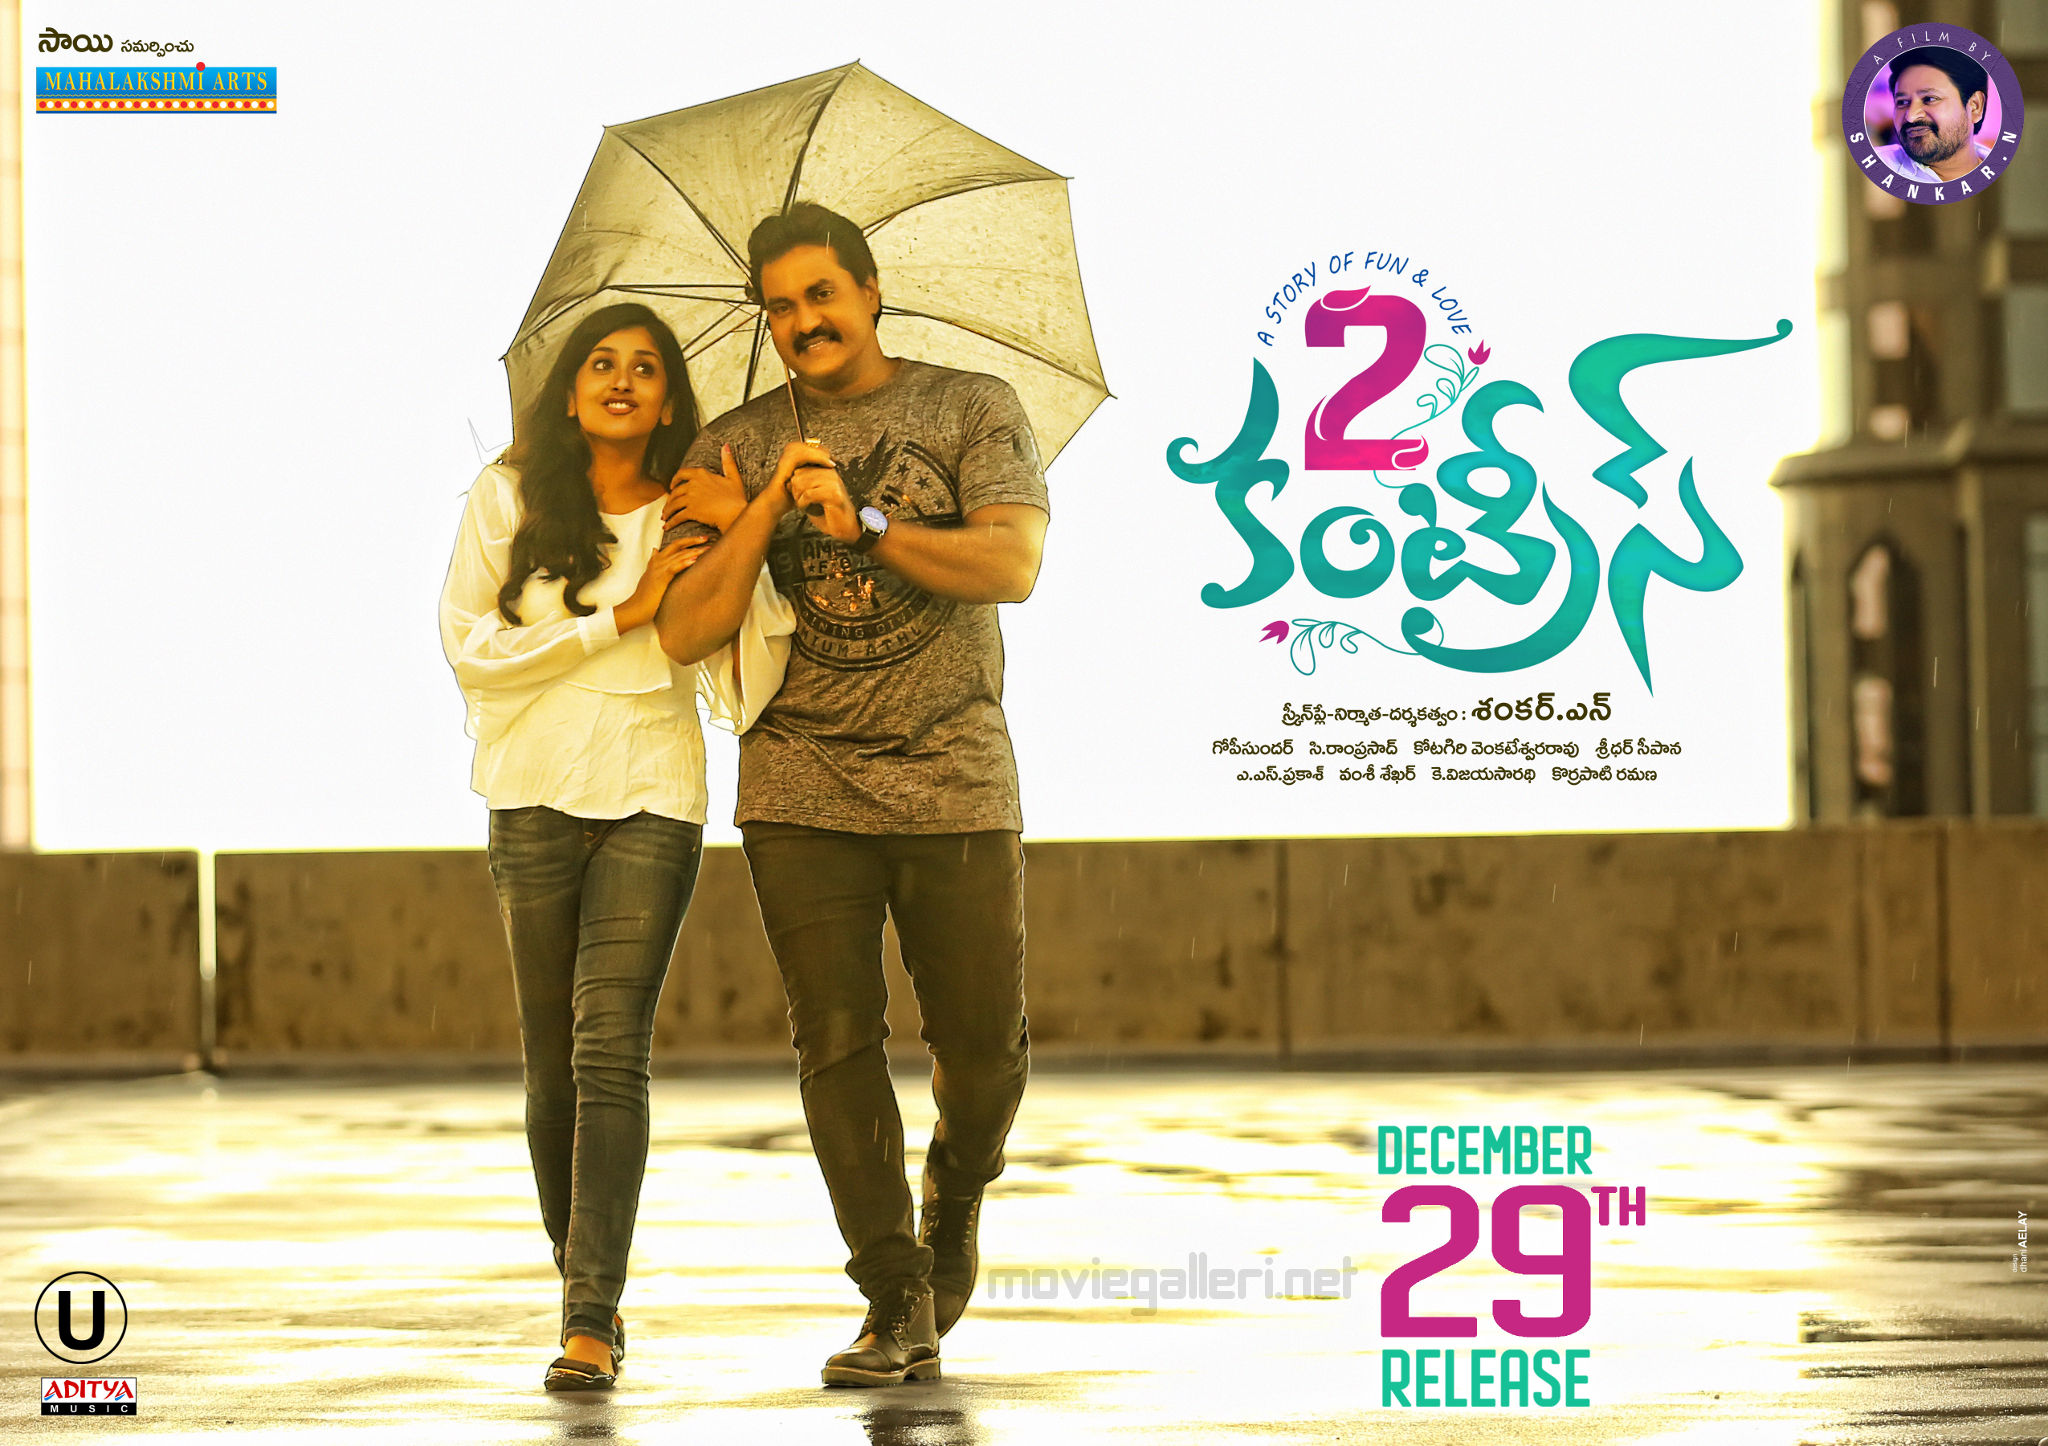 Sunil, Manisha Raj 2 Countries Censor Clean U – Release On Dec 29th